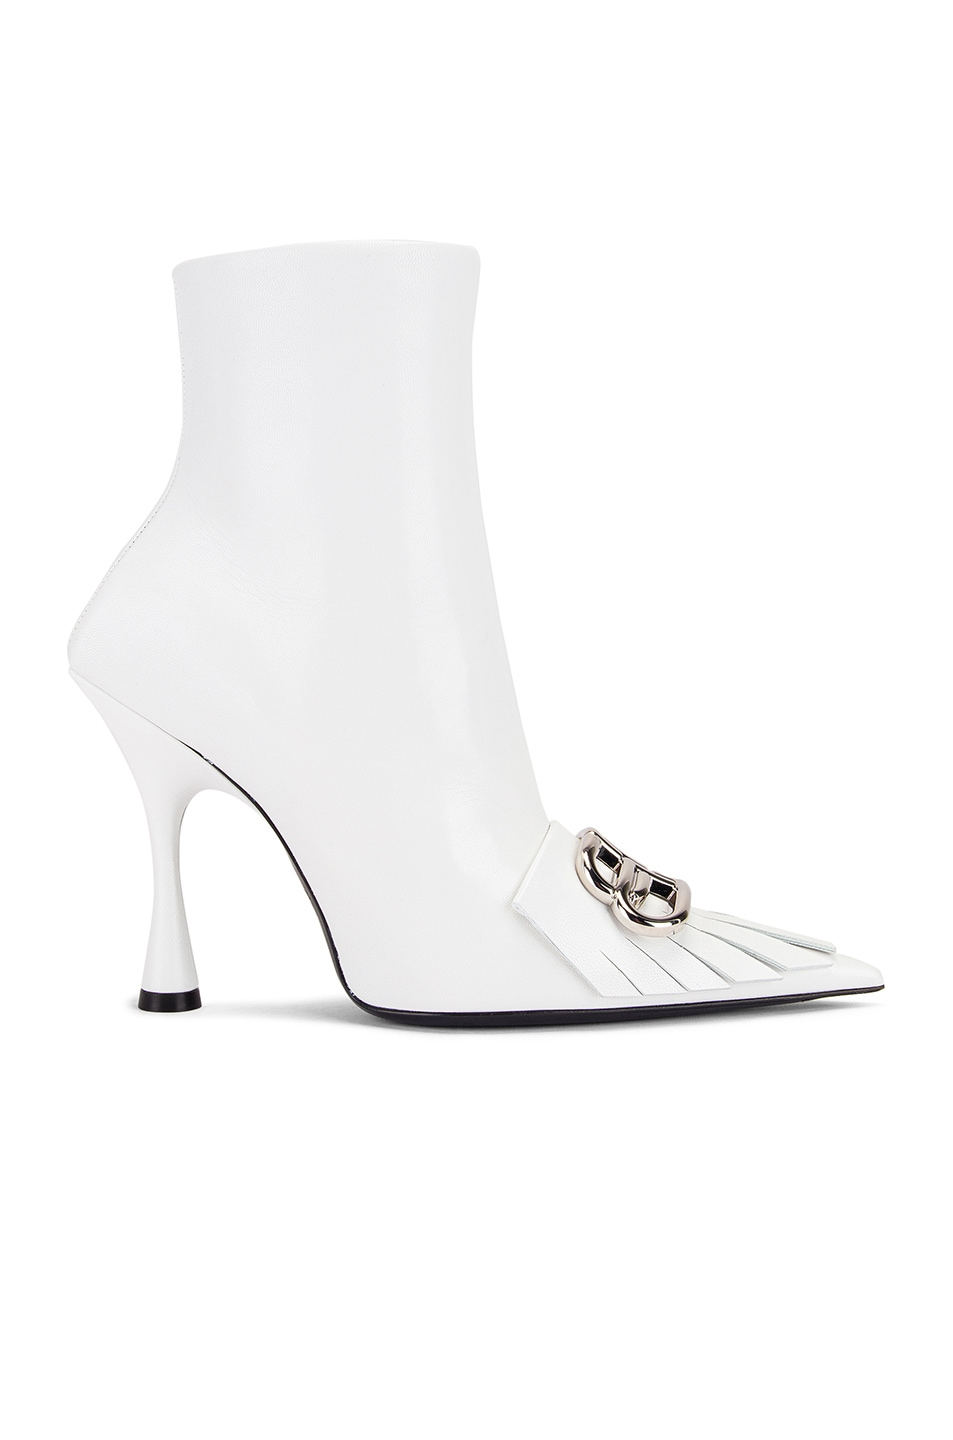 Image 2 of Balenciaga Fringe Knife Booties in White & Silver